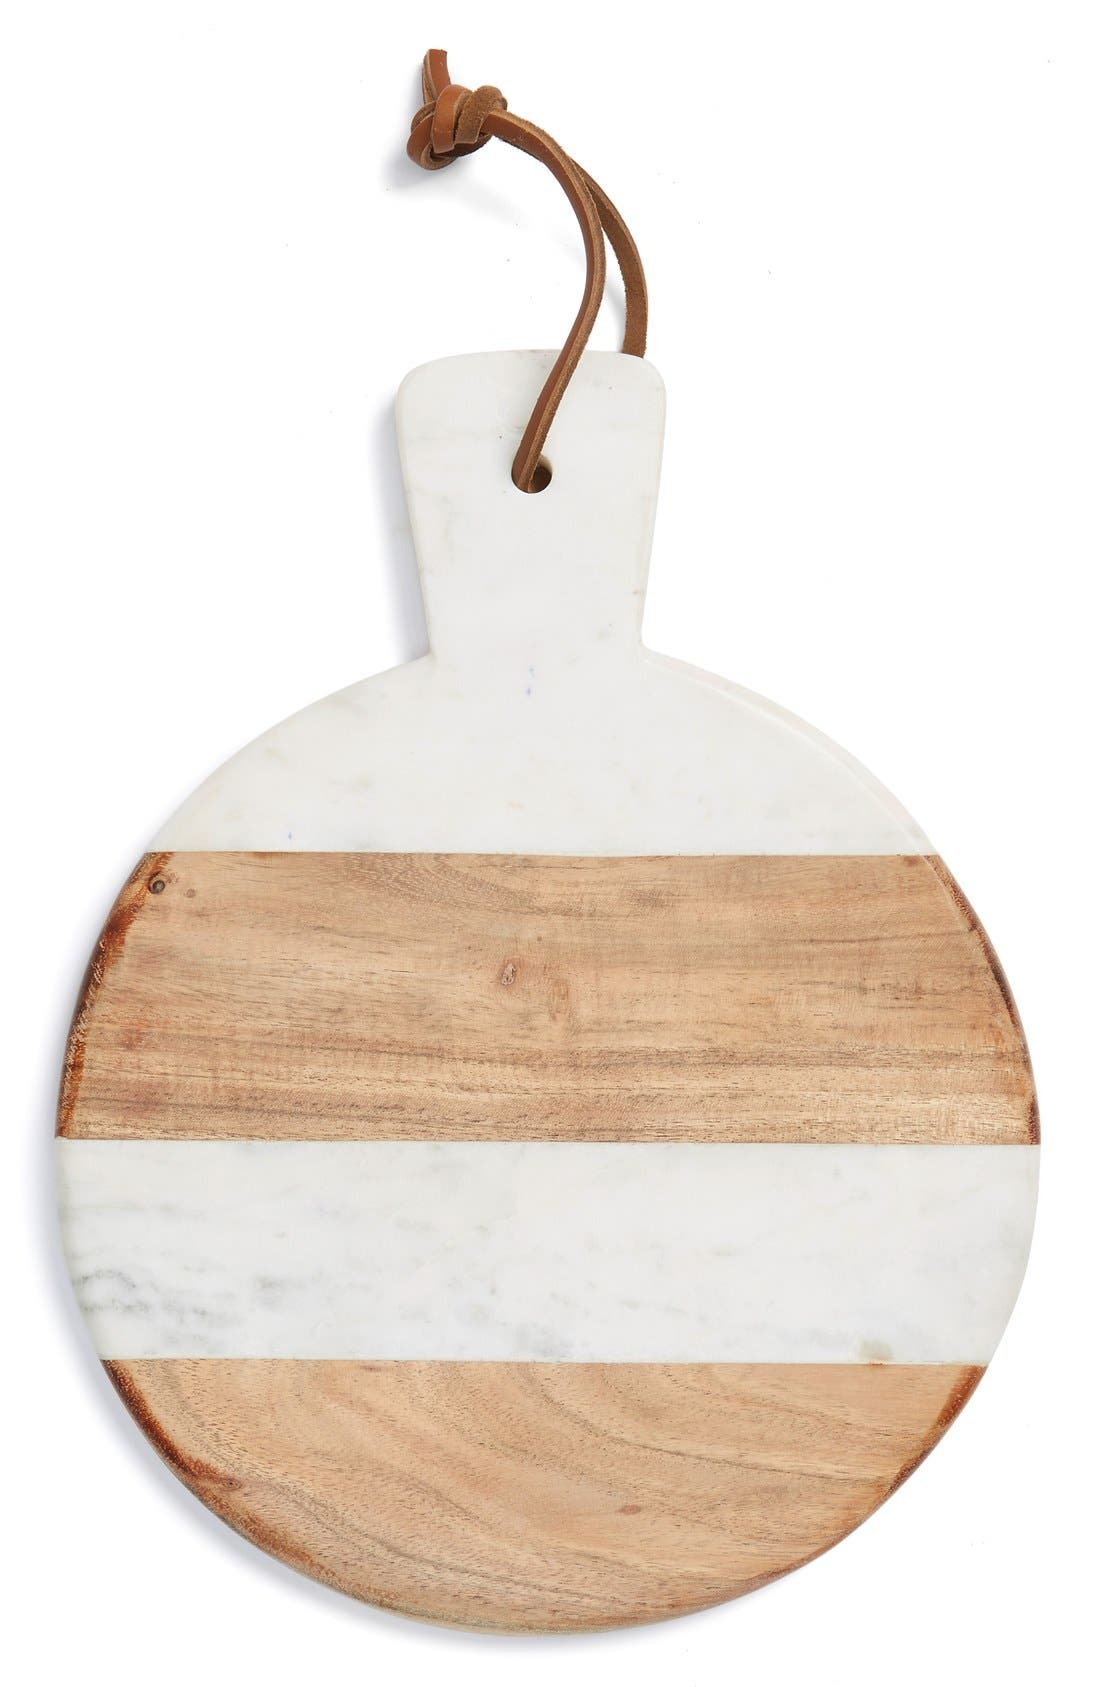 Marble & Wood Paddle Serving Board,                         Main,                         color, Brown/ White